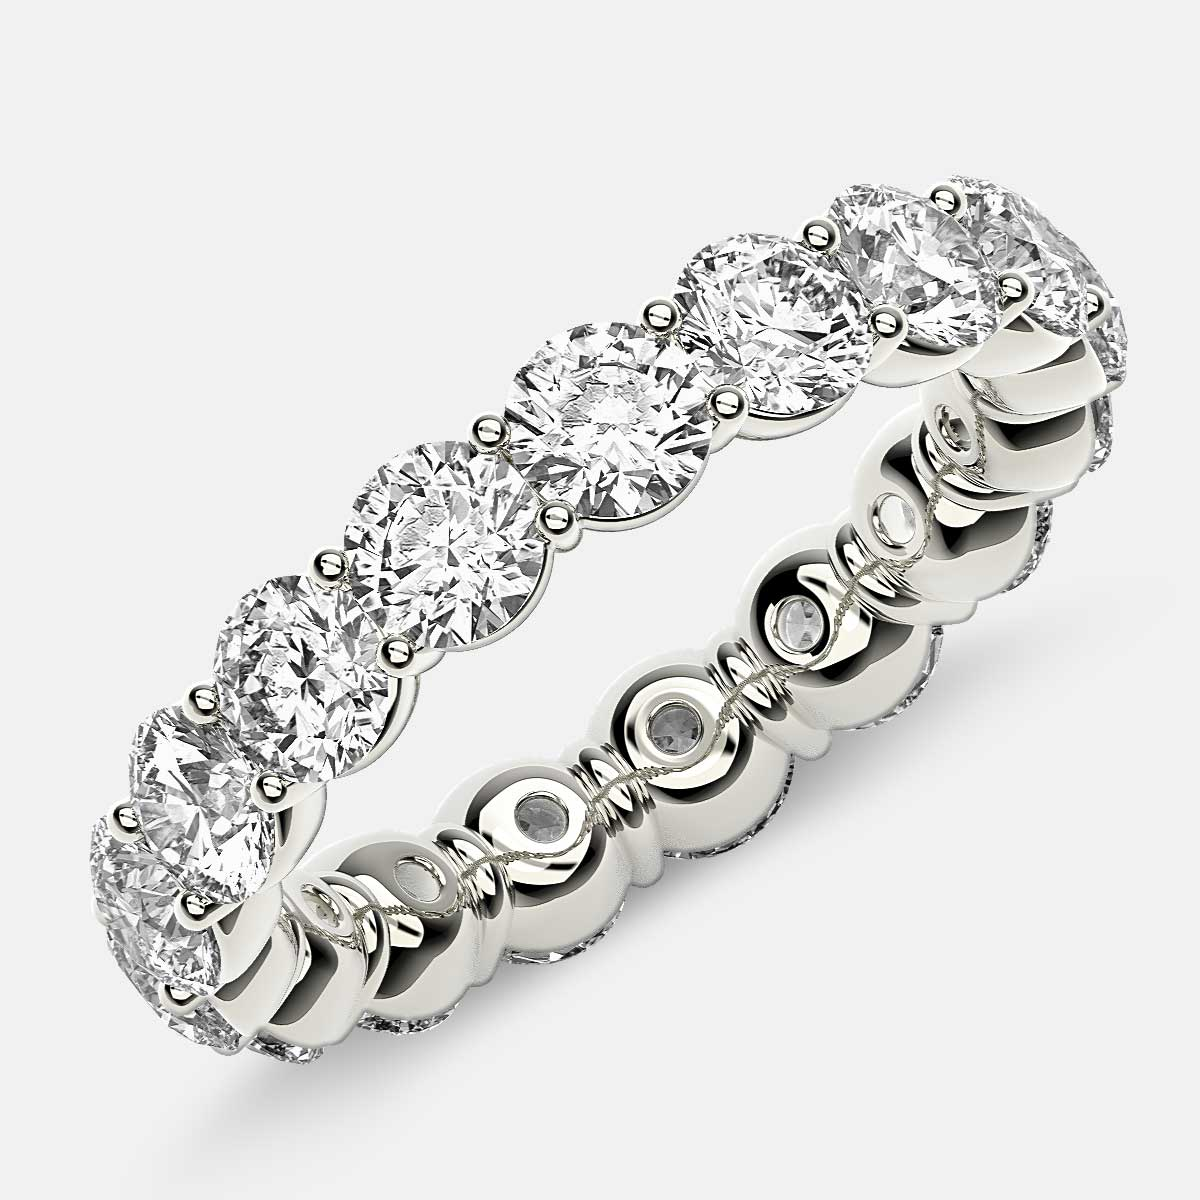 Classic Prong Set Eternity Ring with Round Diamonds in 18k White Gold